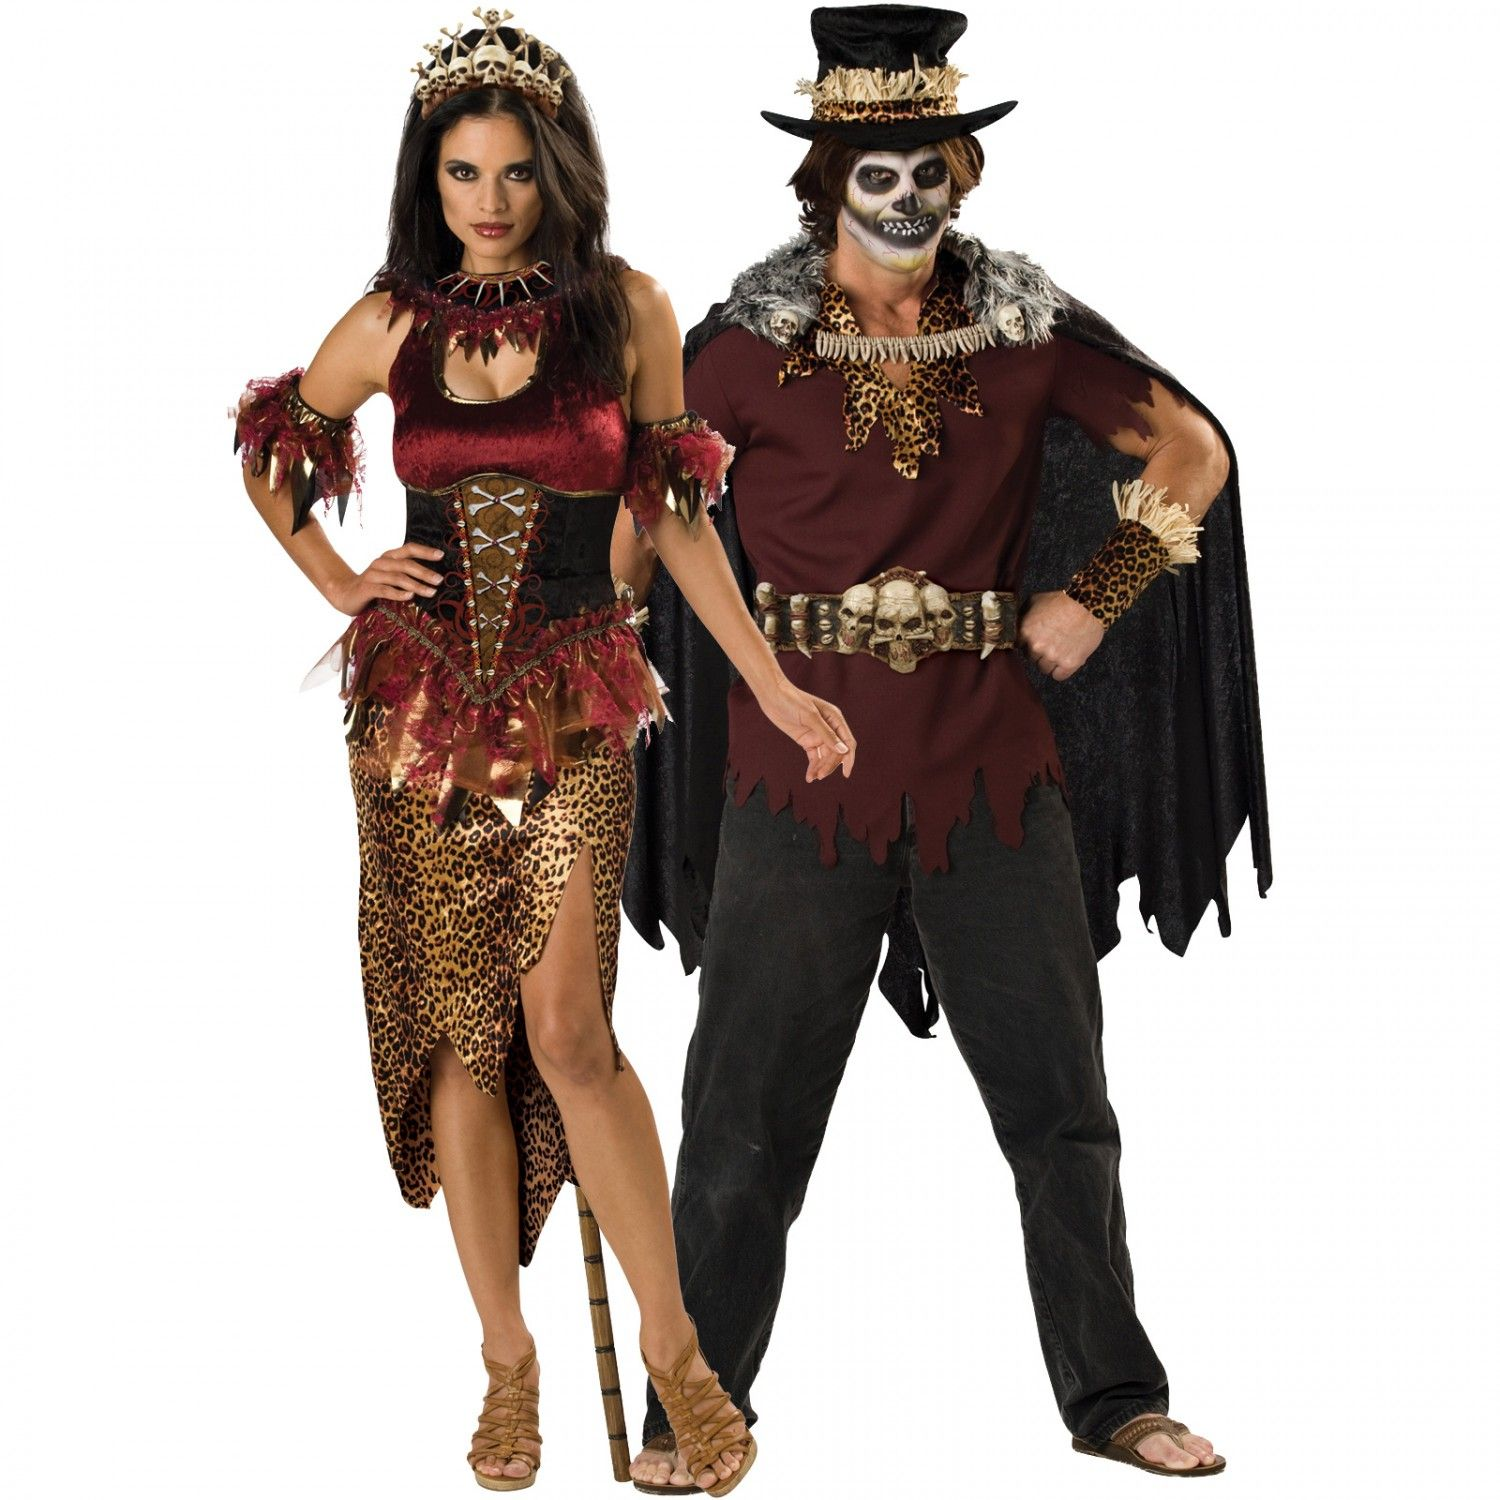 voodoo-dolly-and-witch-doctor-couples-costume.jpg (1500×1500 ...